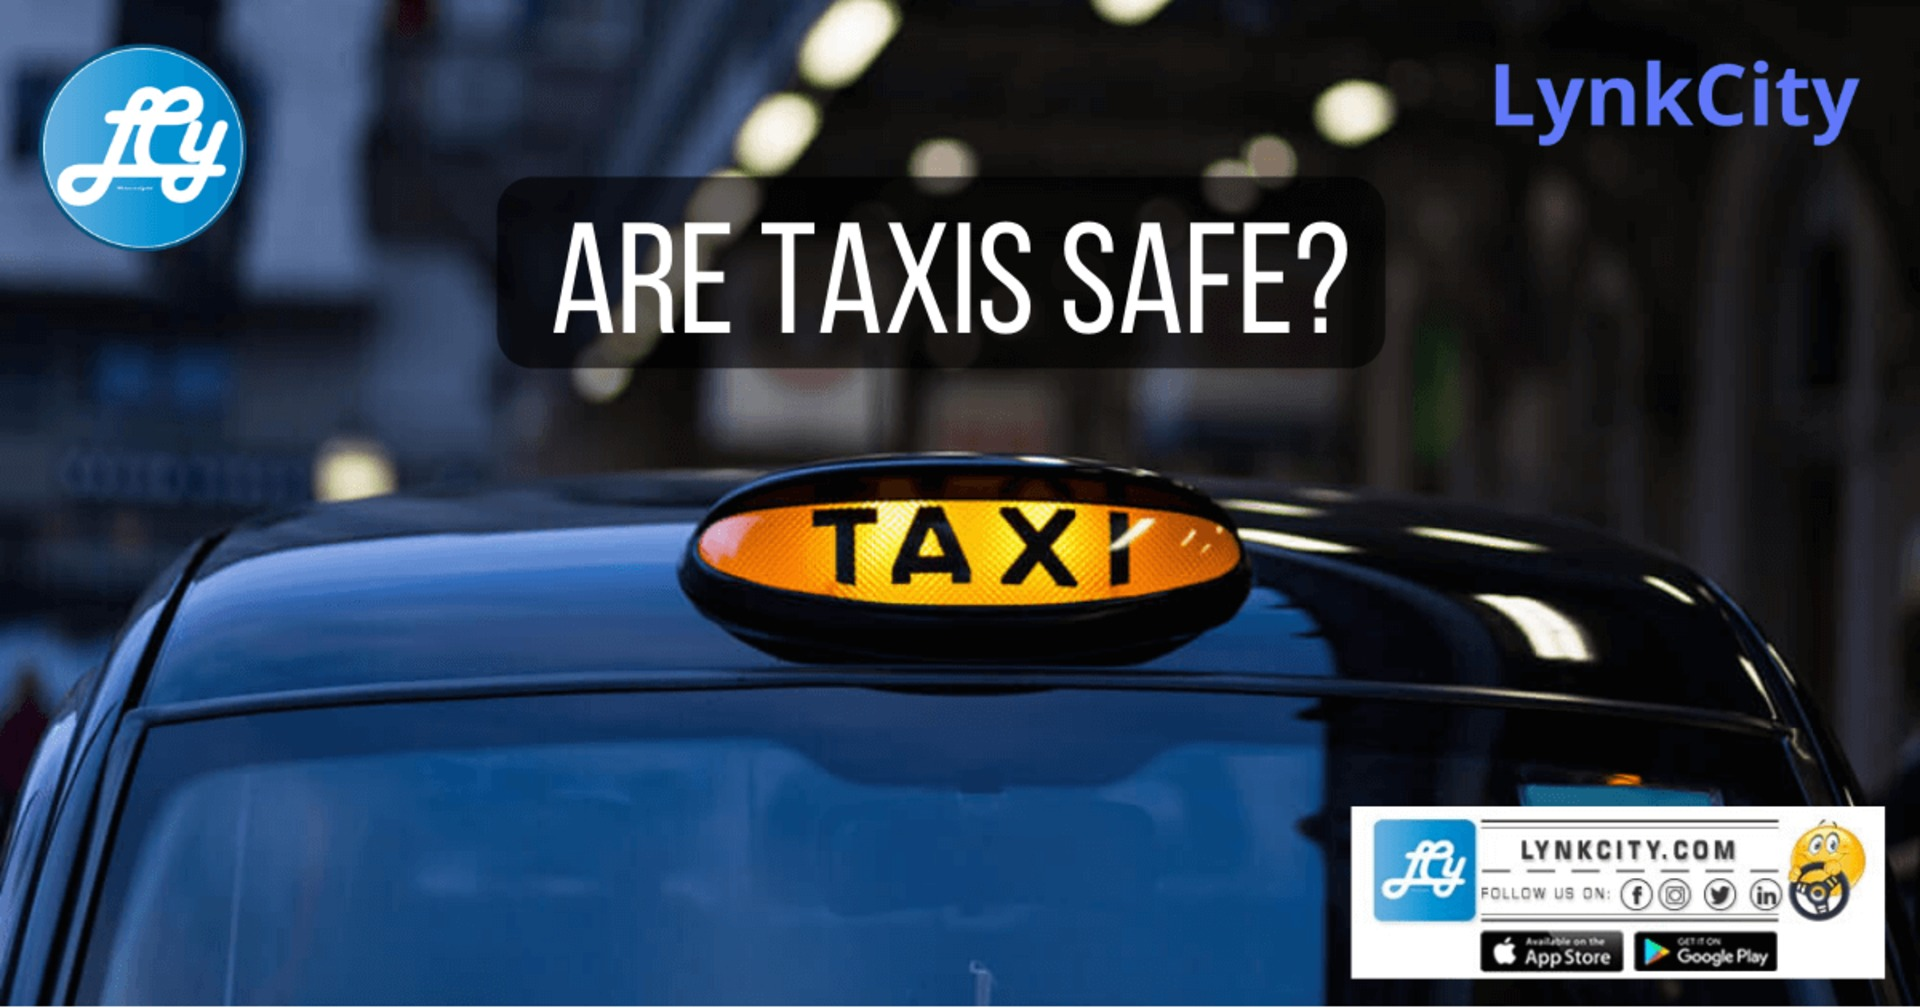 Are Taxis Safe? image